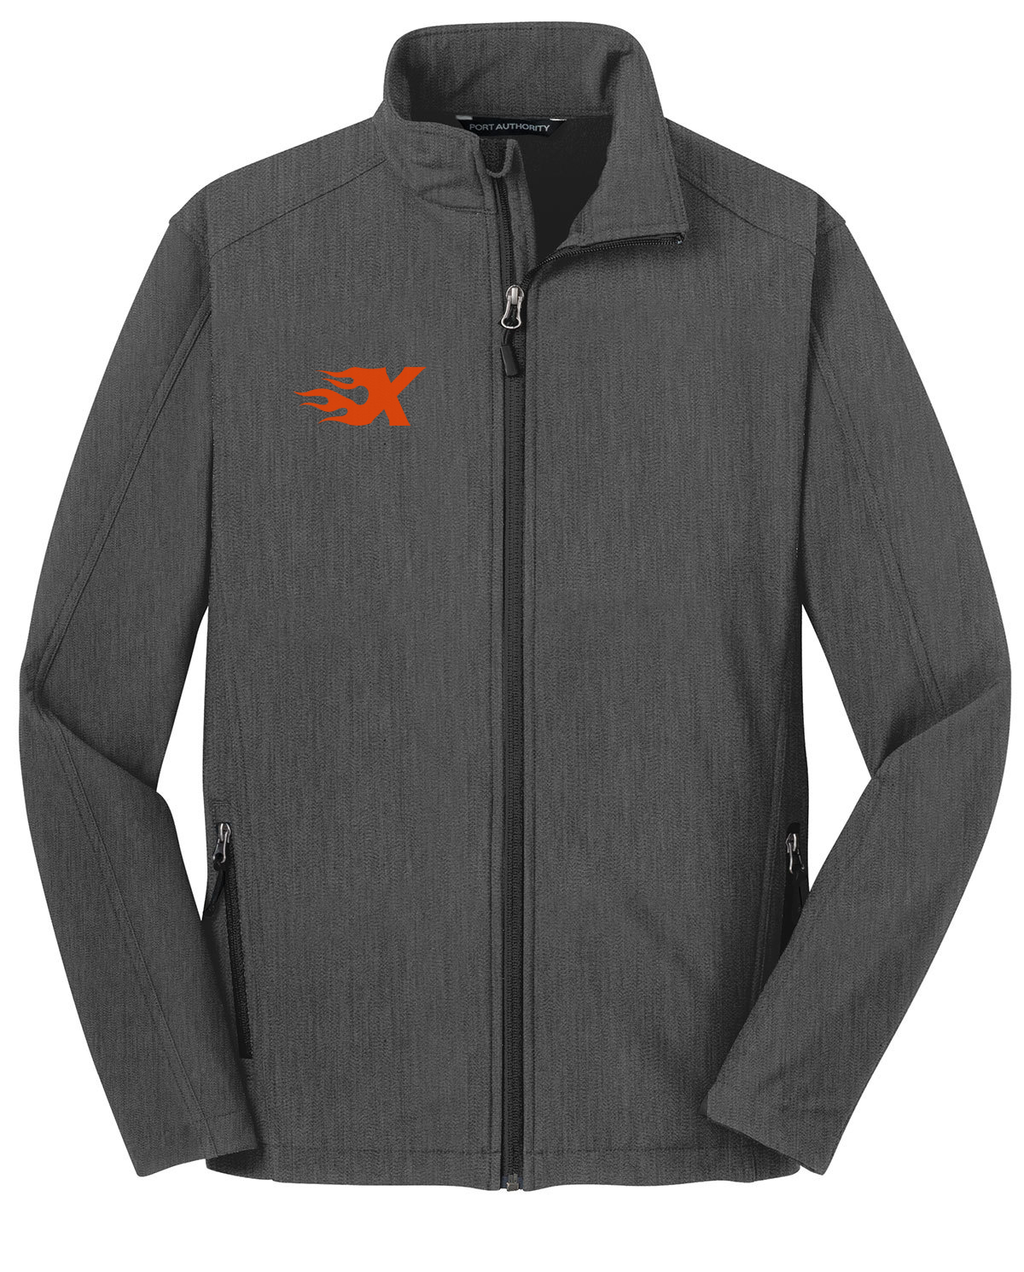 Xtreme Lacrosse Charcoal Soft Shell Jacket